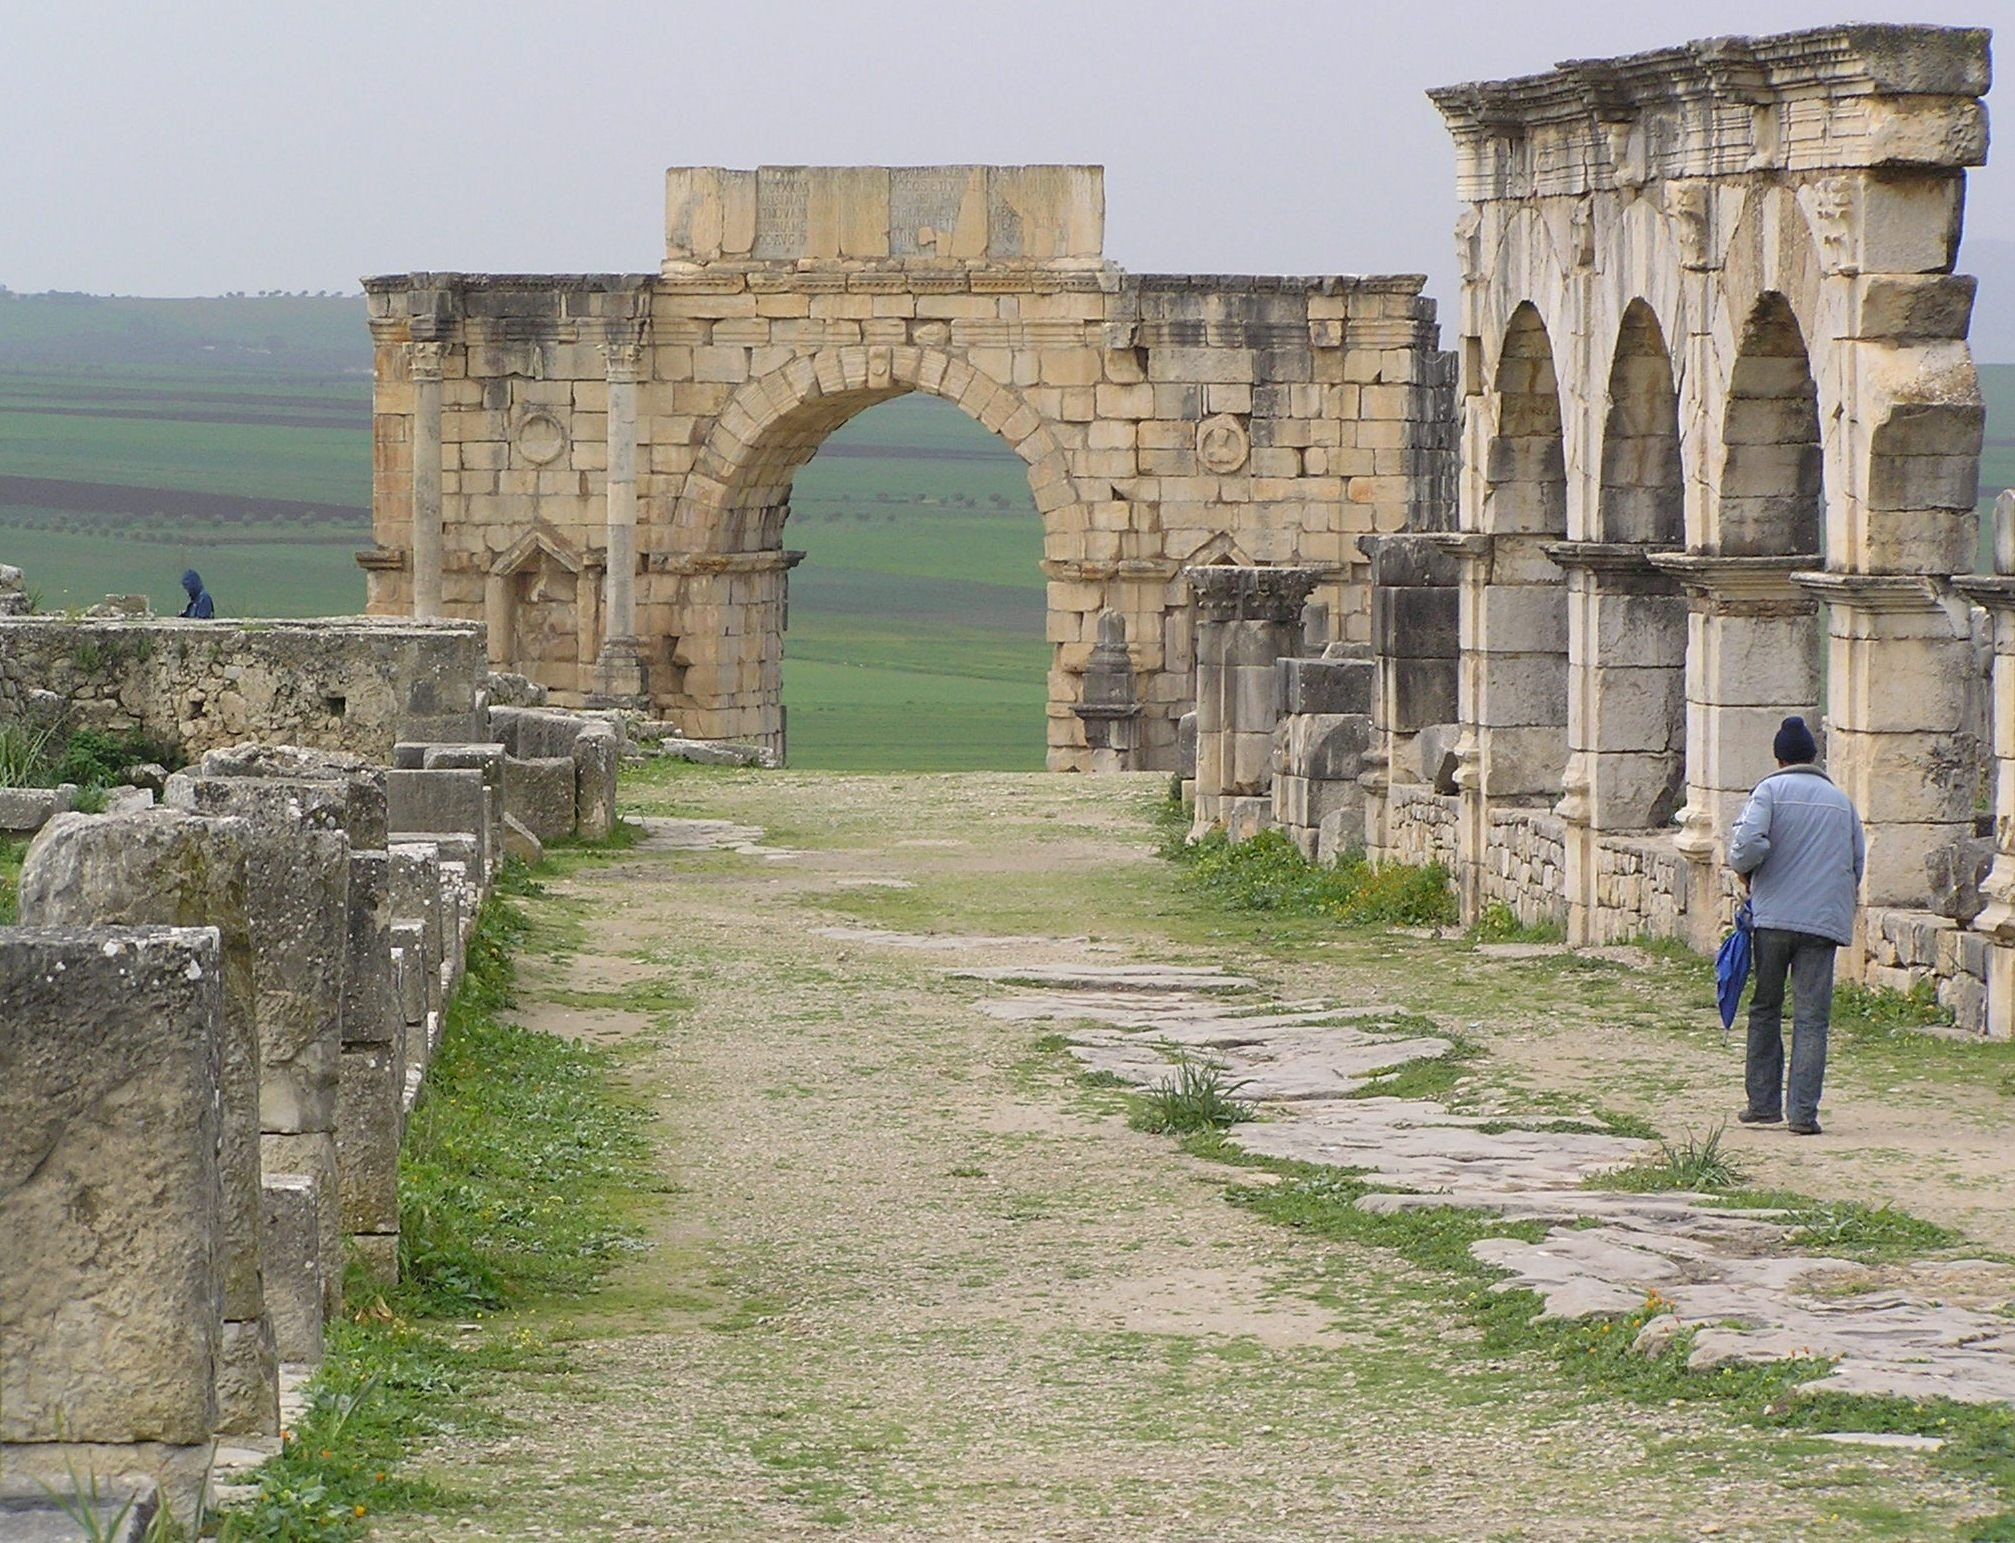 Volubilis, ruins of a Roman town in Morocco - Het Hunebed